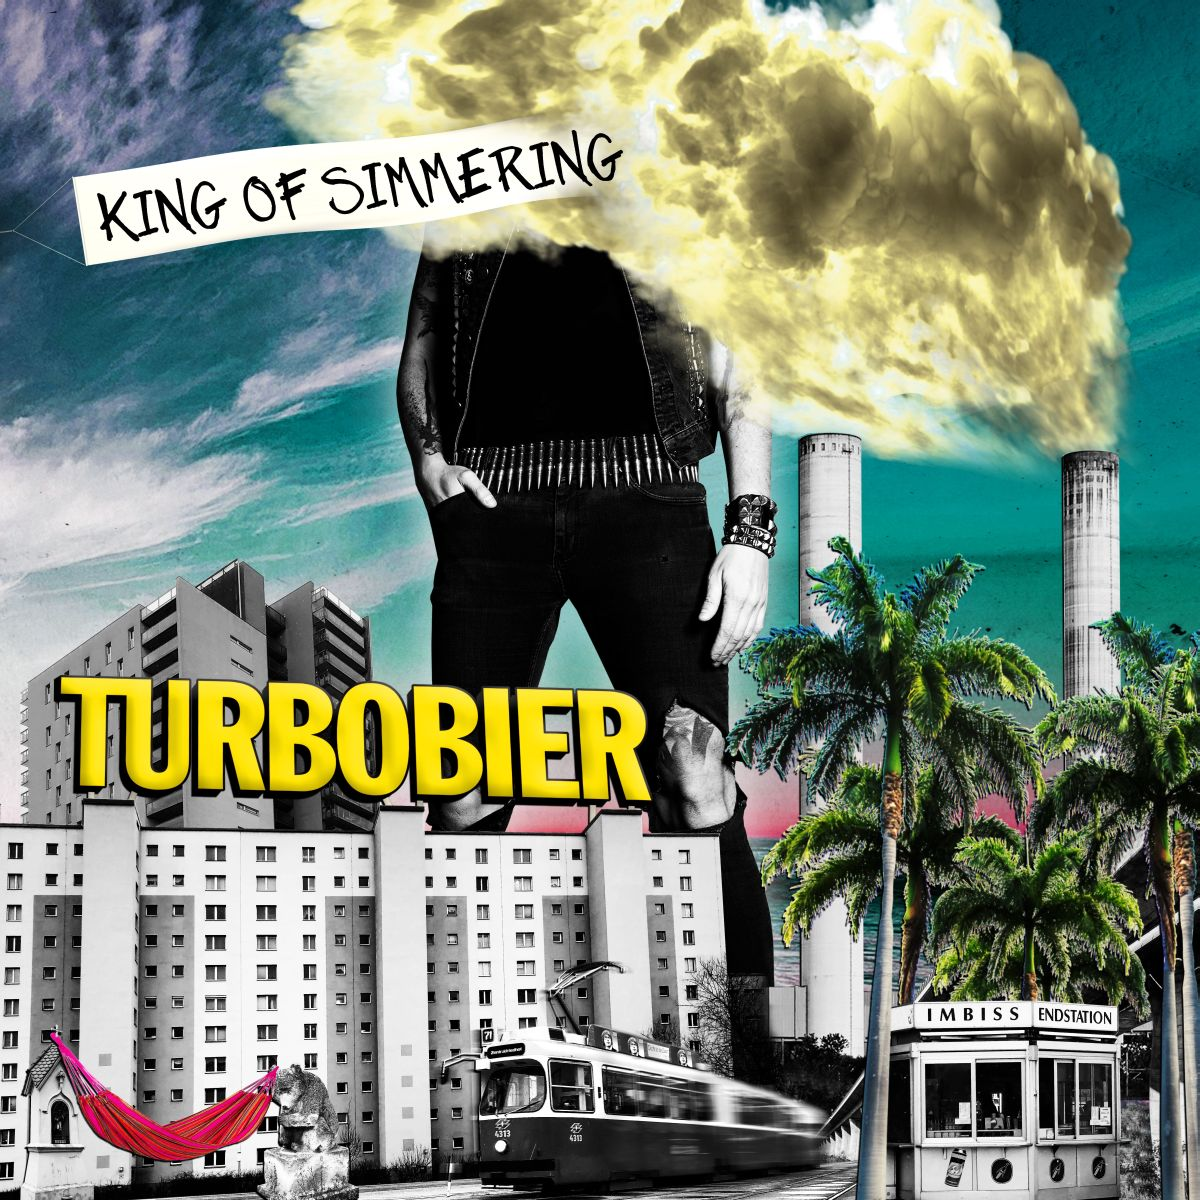 turbobier-king-of-simmering-cd-review